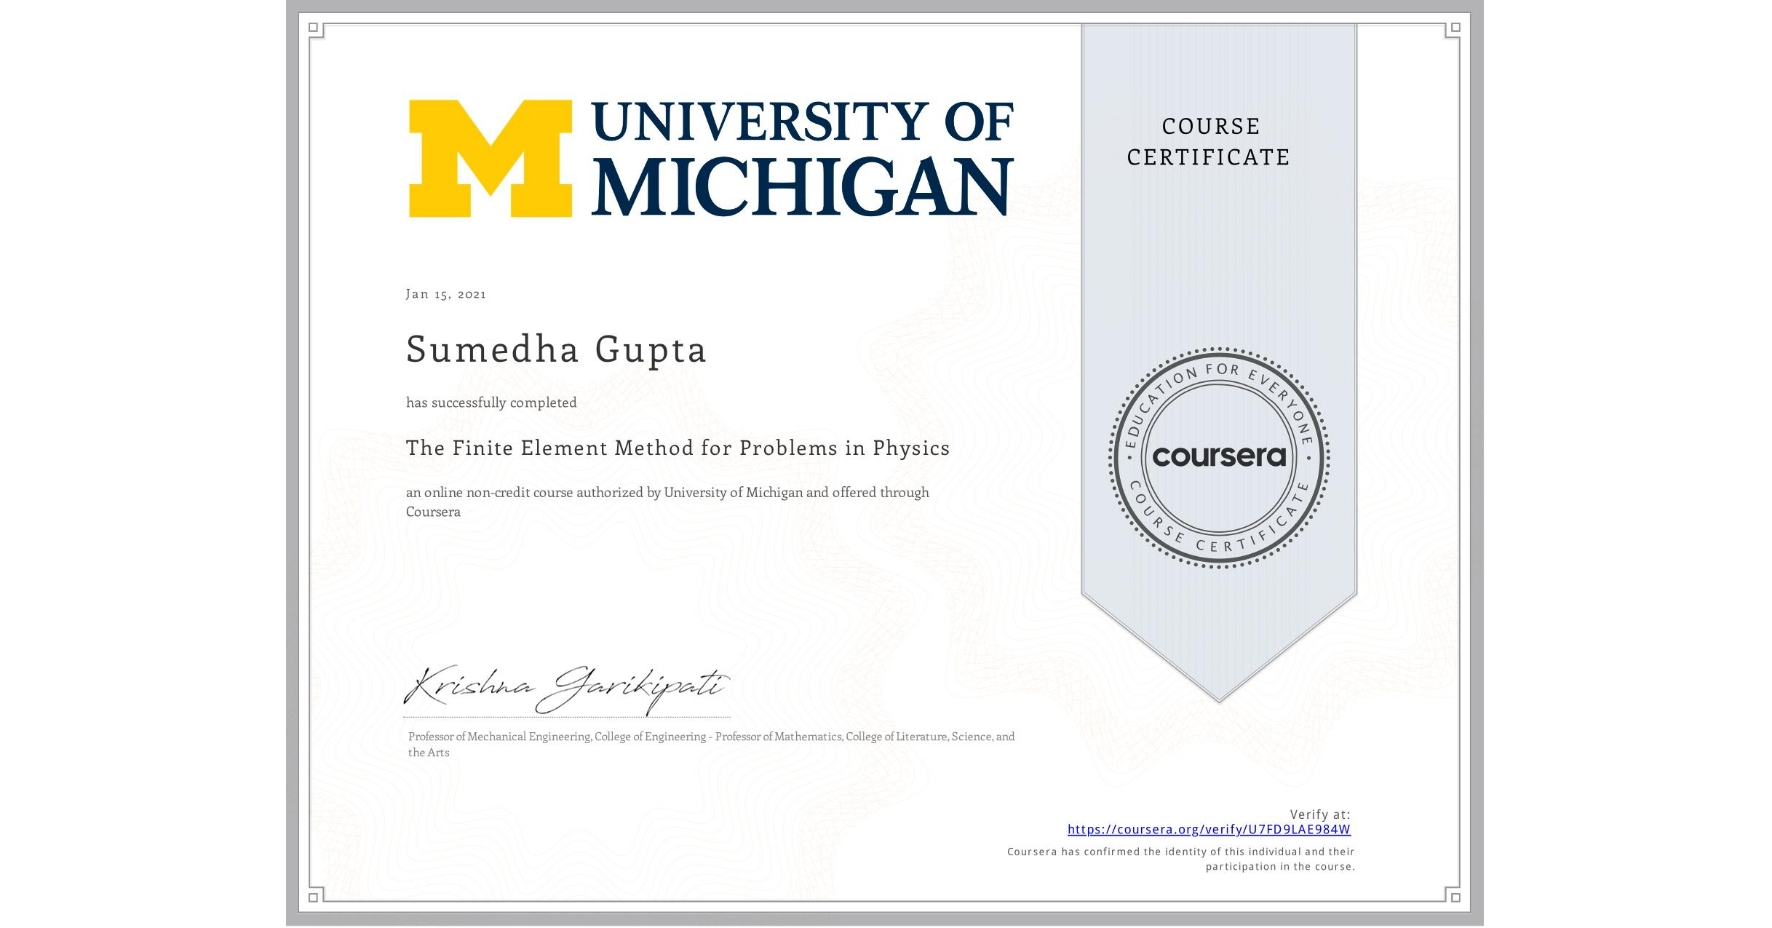 View certificate for Sumedha Gupta, The Finite Element Method for Problems in Physics, an online non-credit course authorized by University of Michigan and offered through Coursera